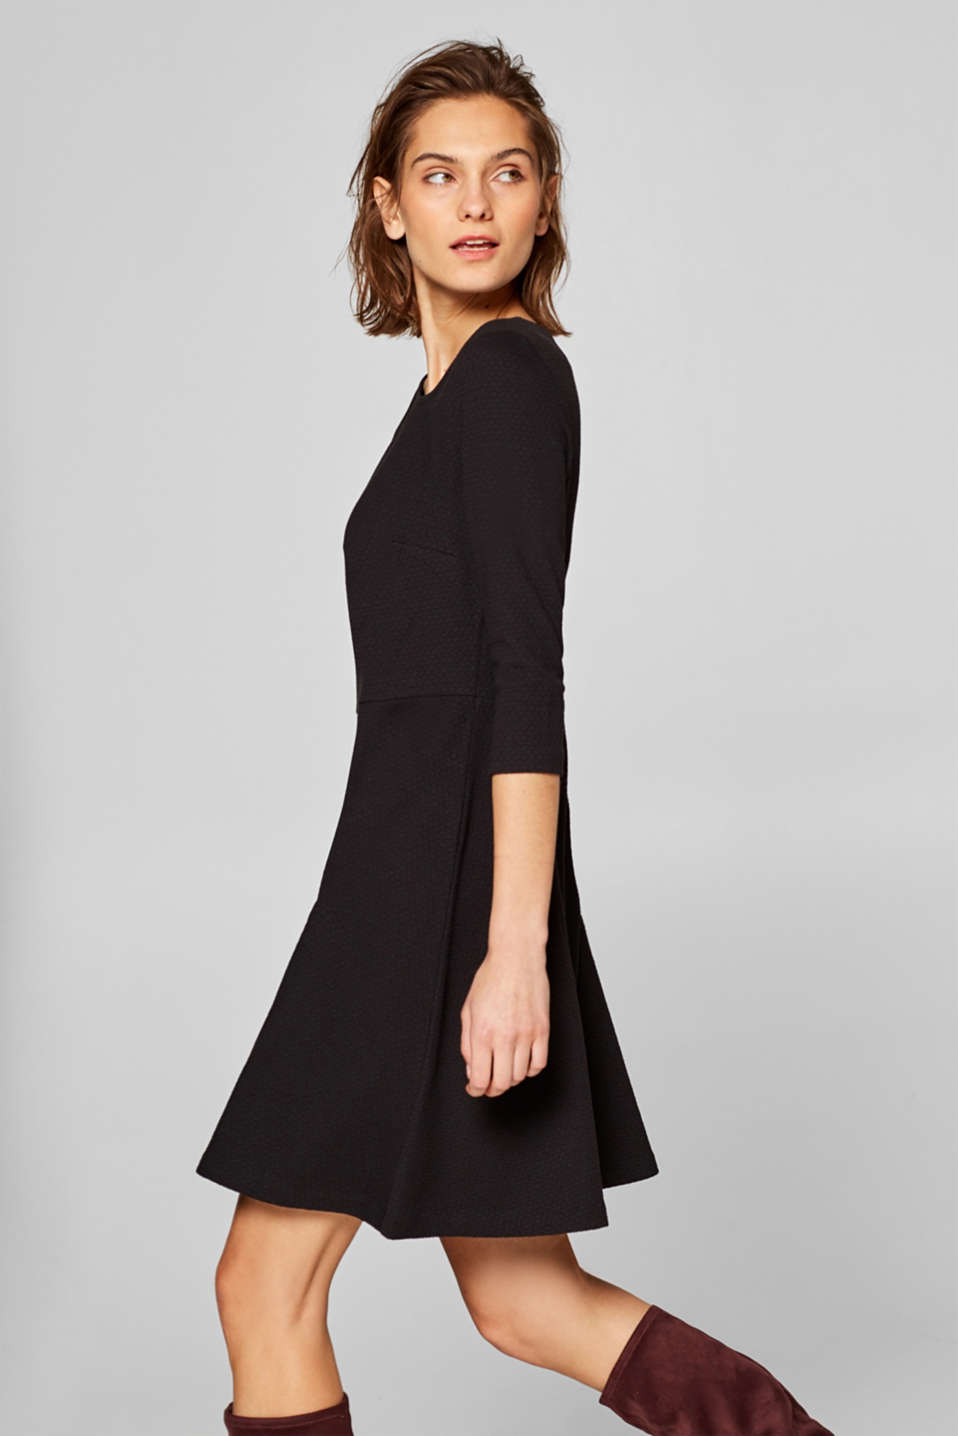 Esprit - Textured stretch jersey dress